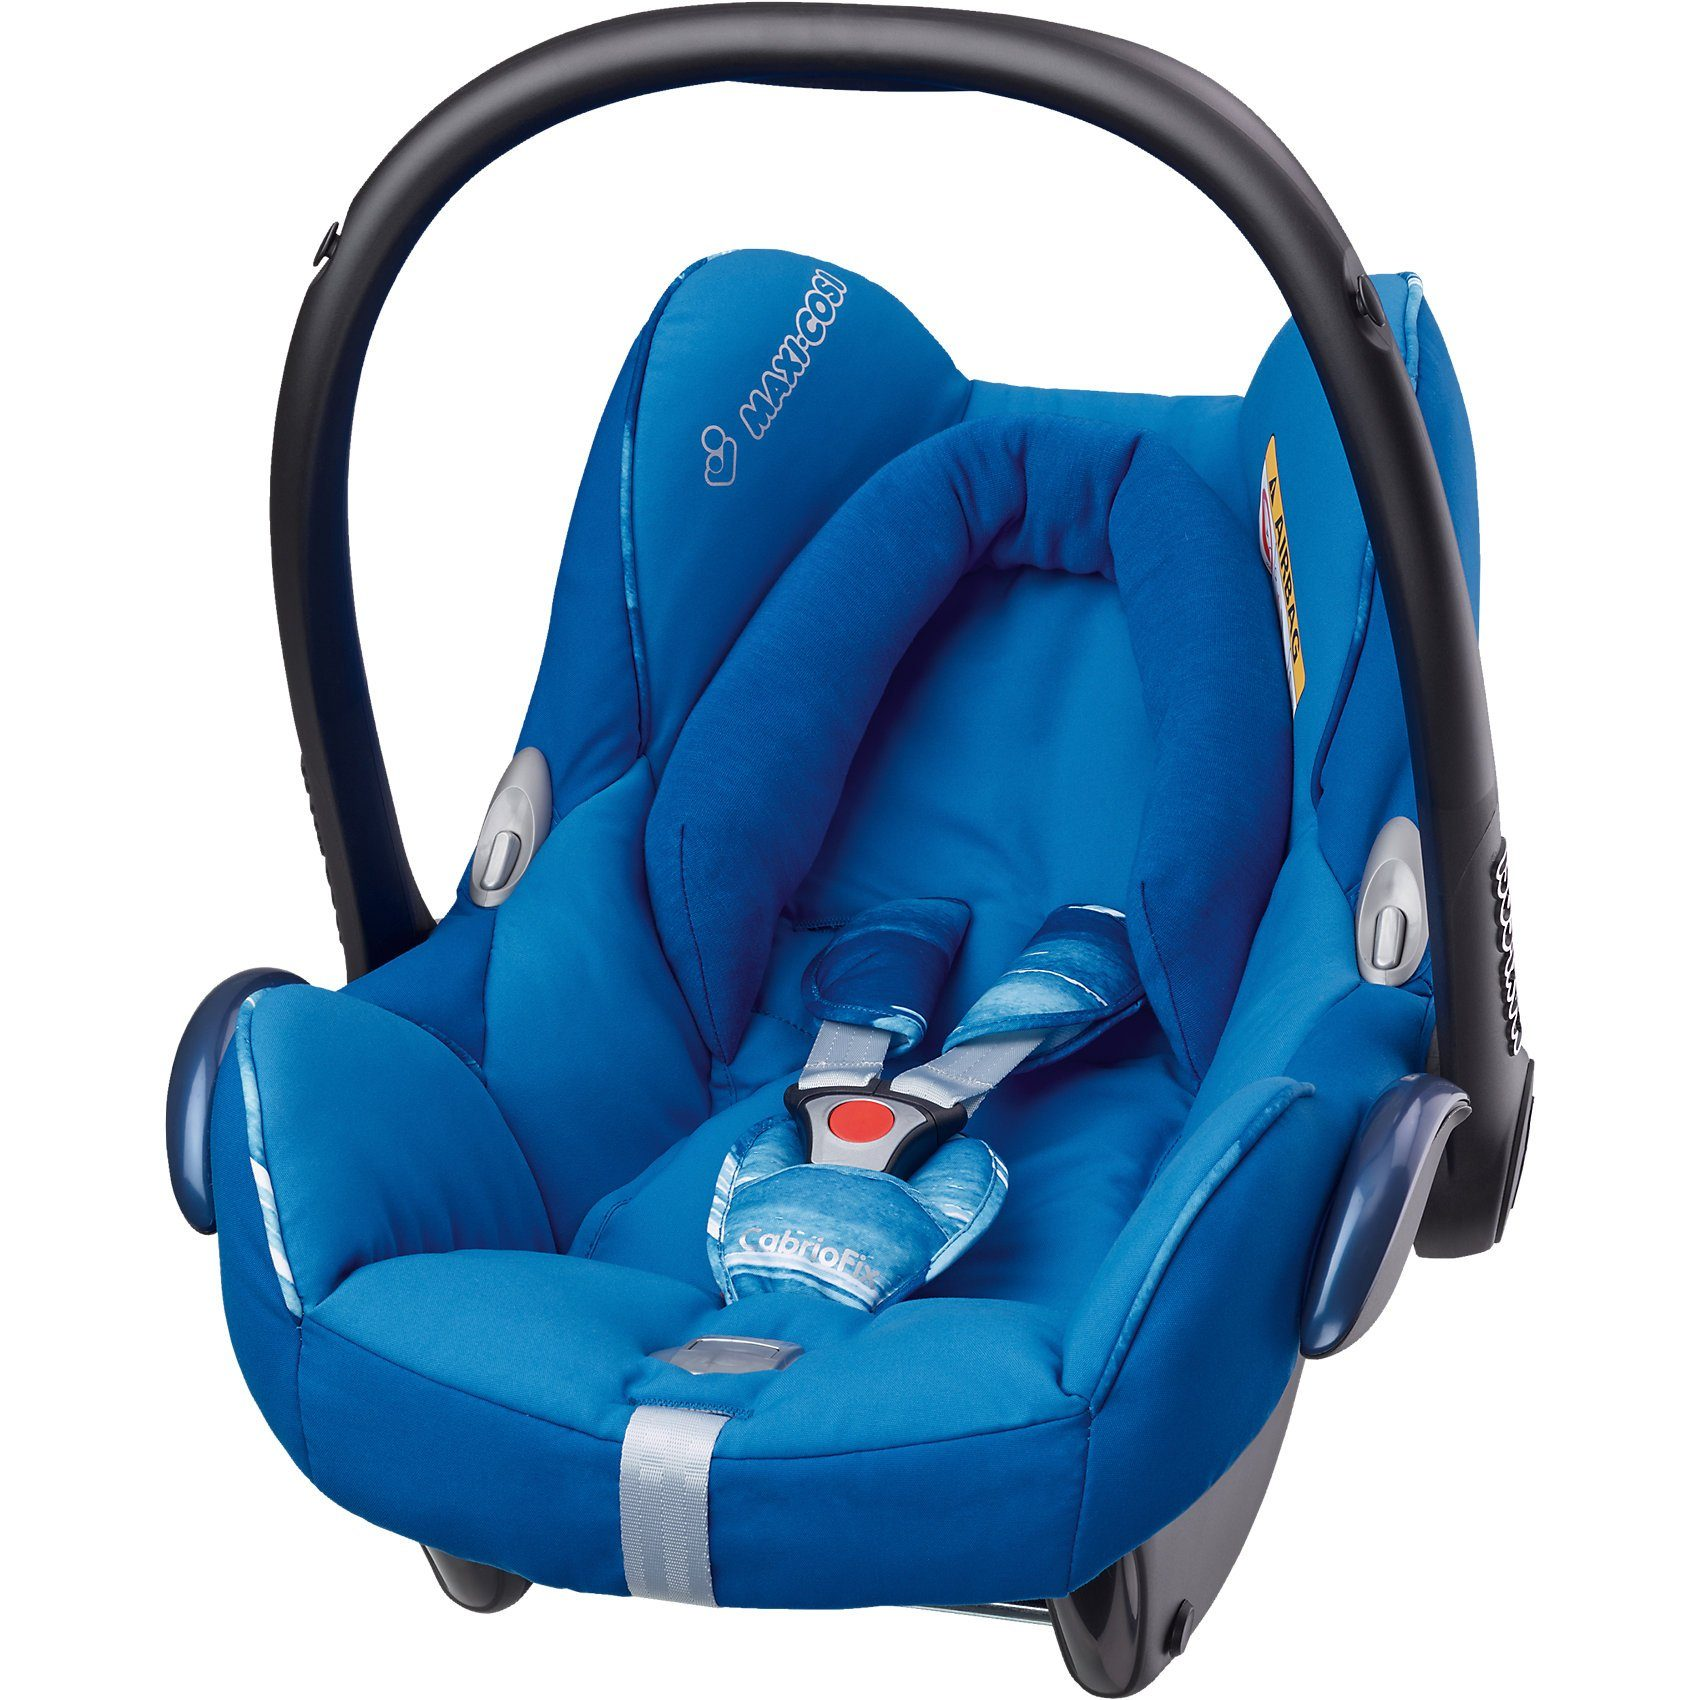 Maxi-Cosi Babyschale Cabriofix, watercolour blue, 2016